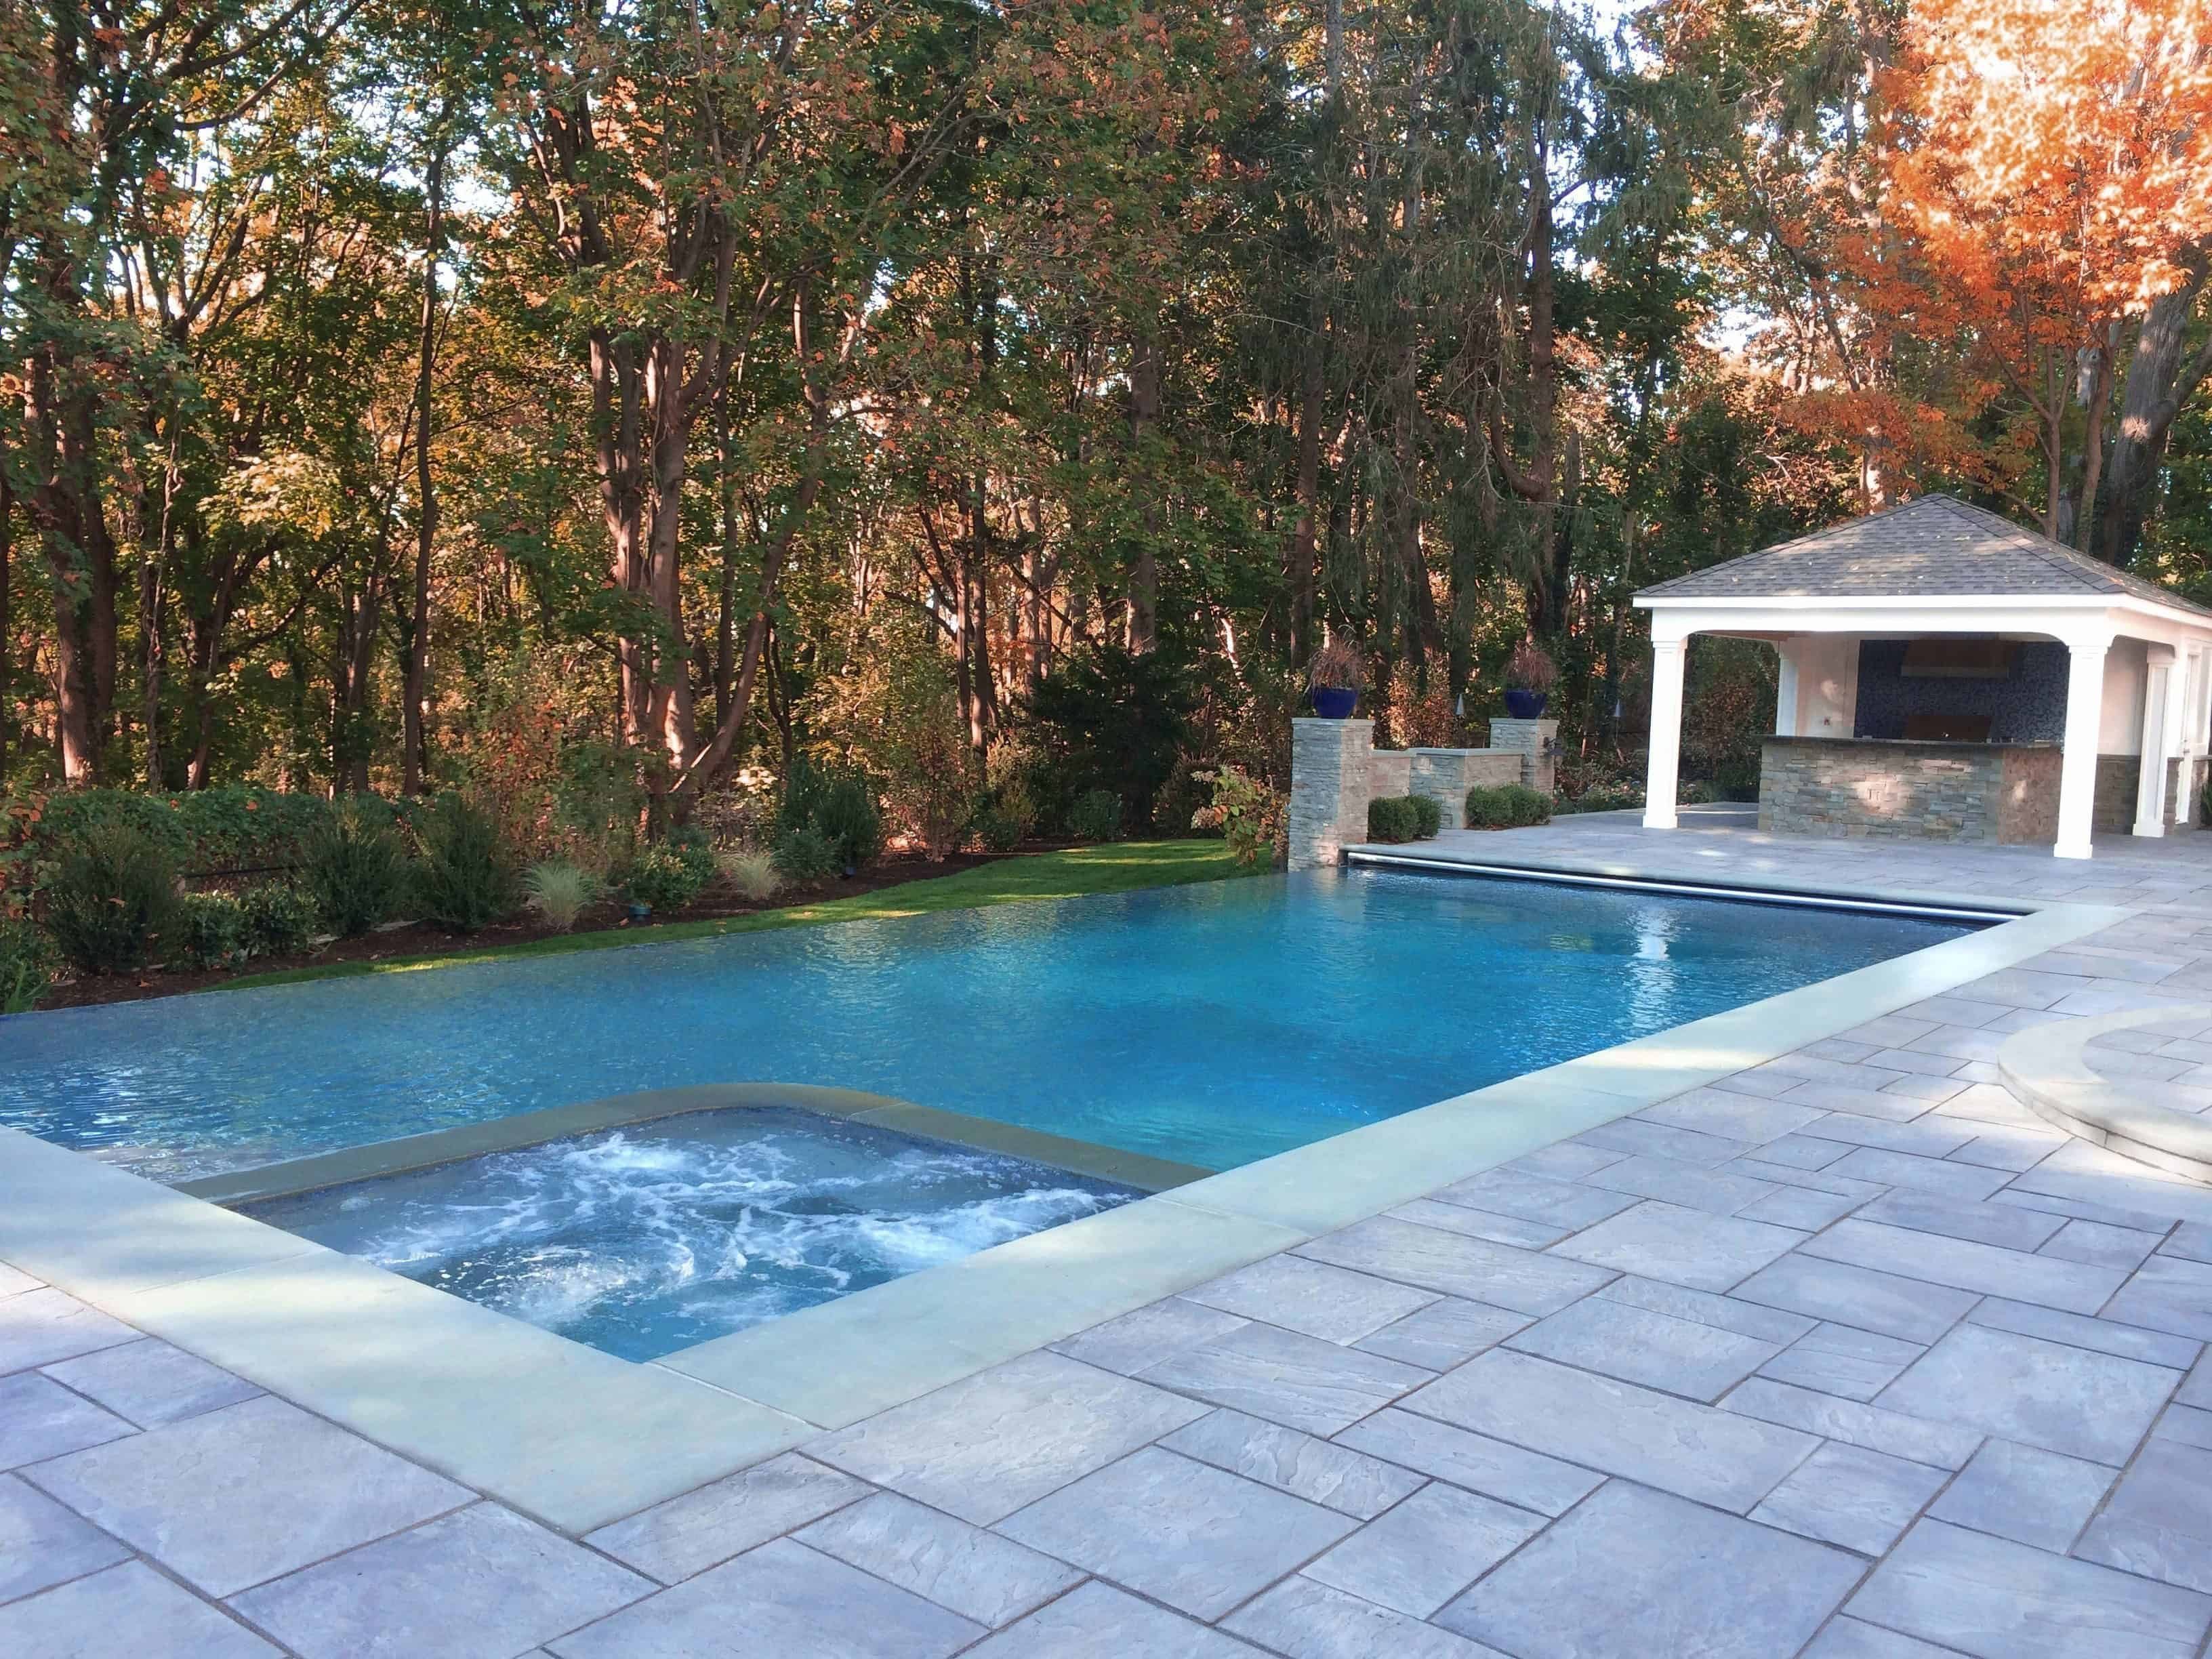 24' x 44' Gunite Pool with 44' Infinity Edge, 8' x 8' Custom Spa, and Automatic Cover - Manhasset, Long Island NY